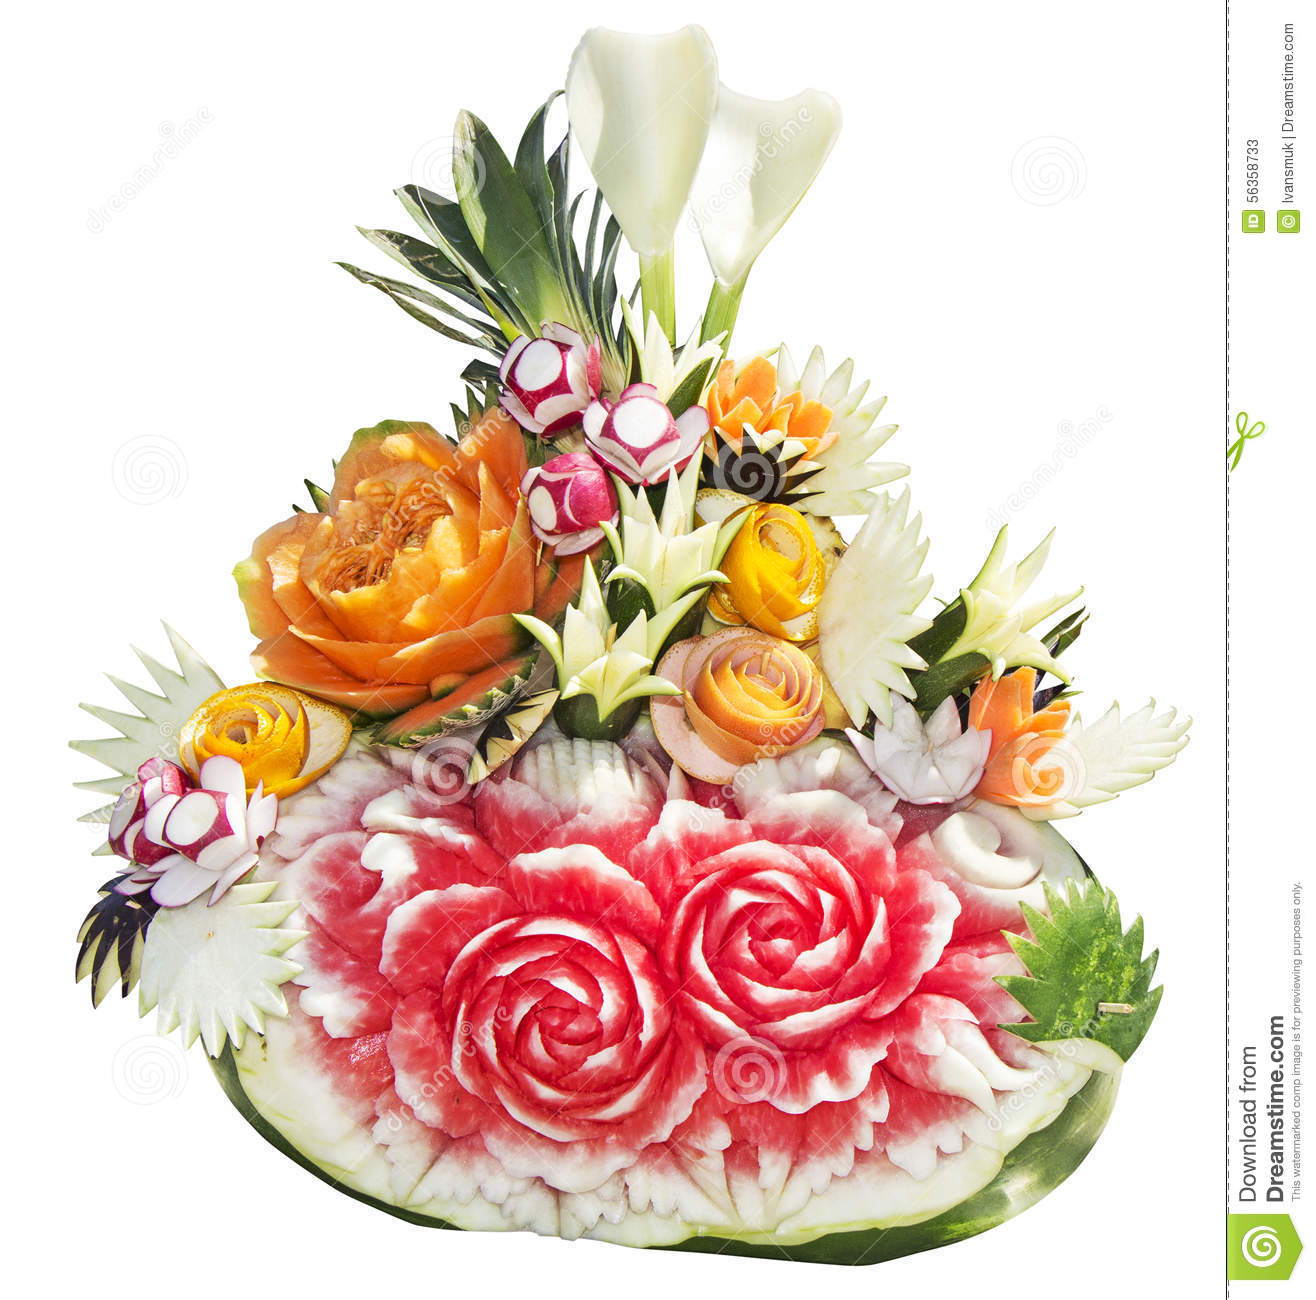 sculpture of fruit and vegetables stock image image of decoration isolated 56358733. Black Bedroom Furniture Sets. Home Design Ideas